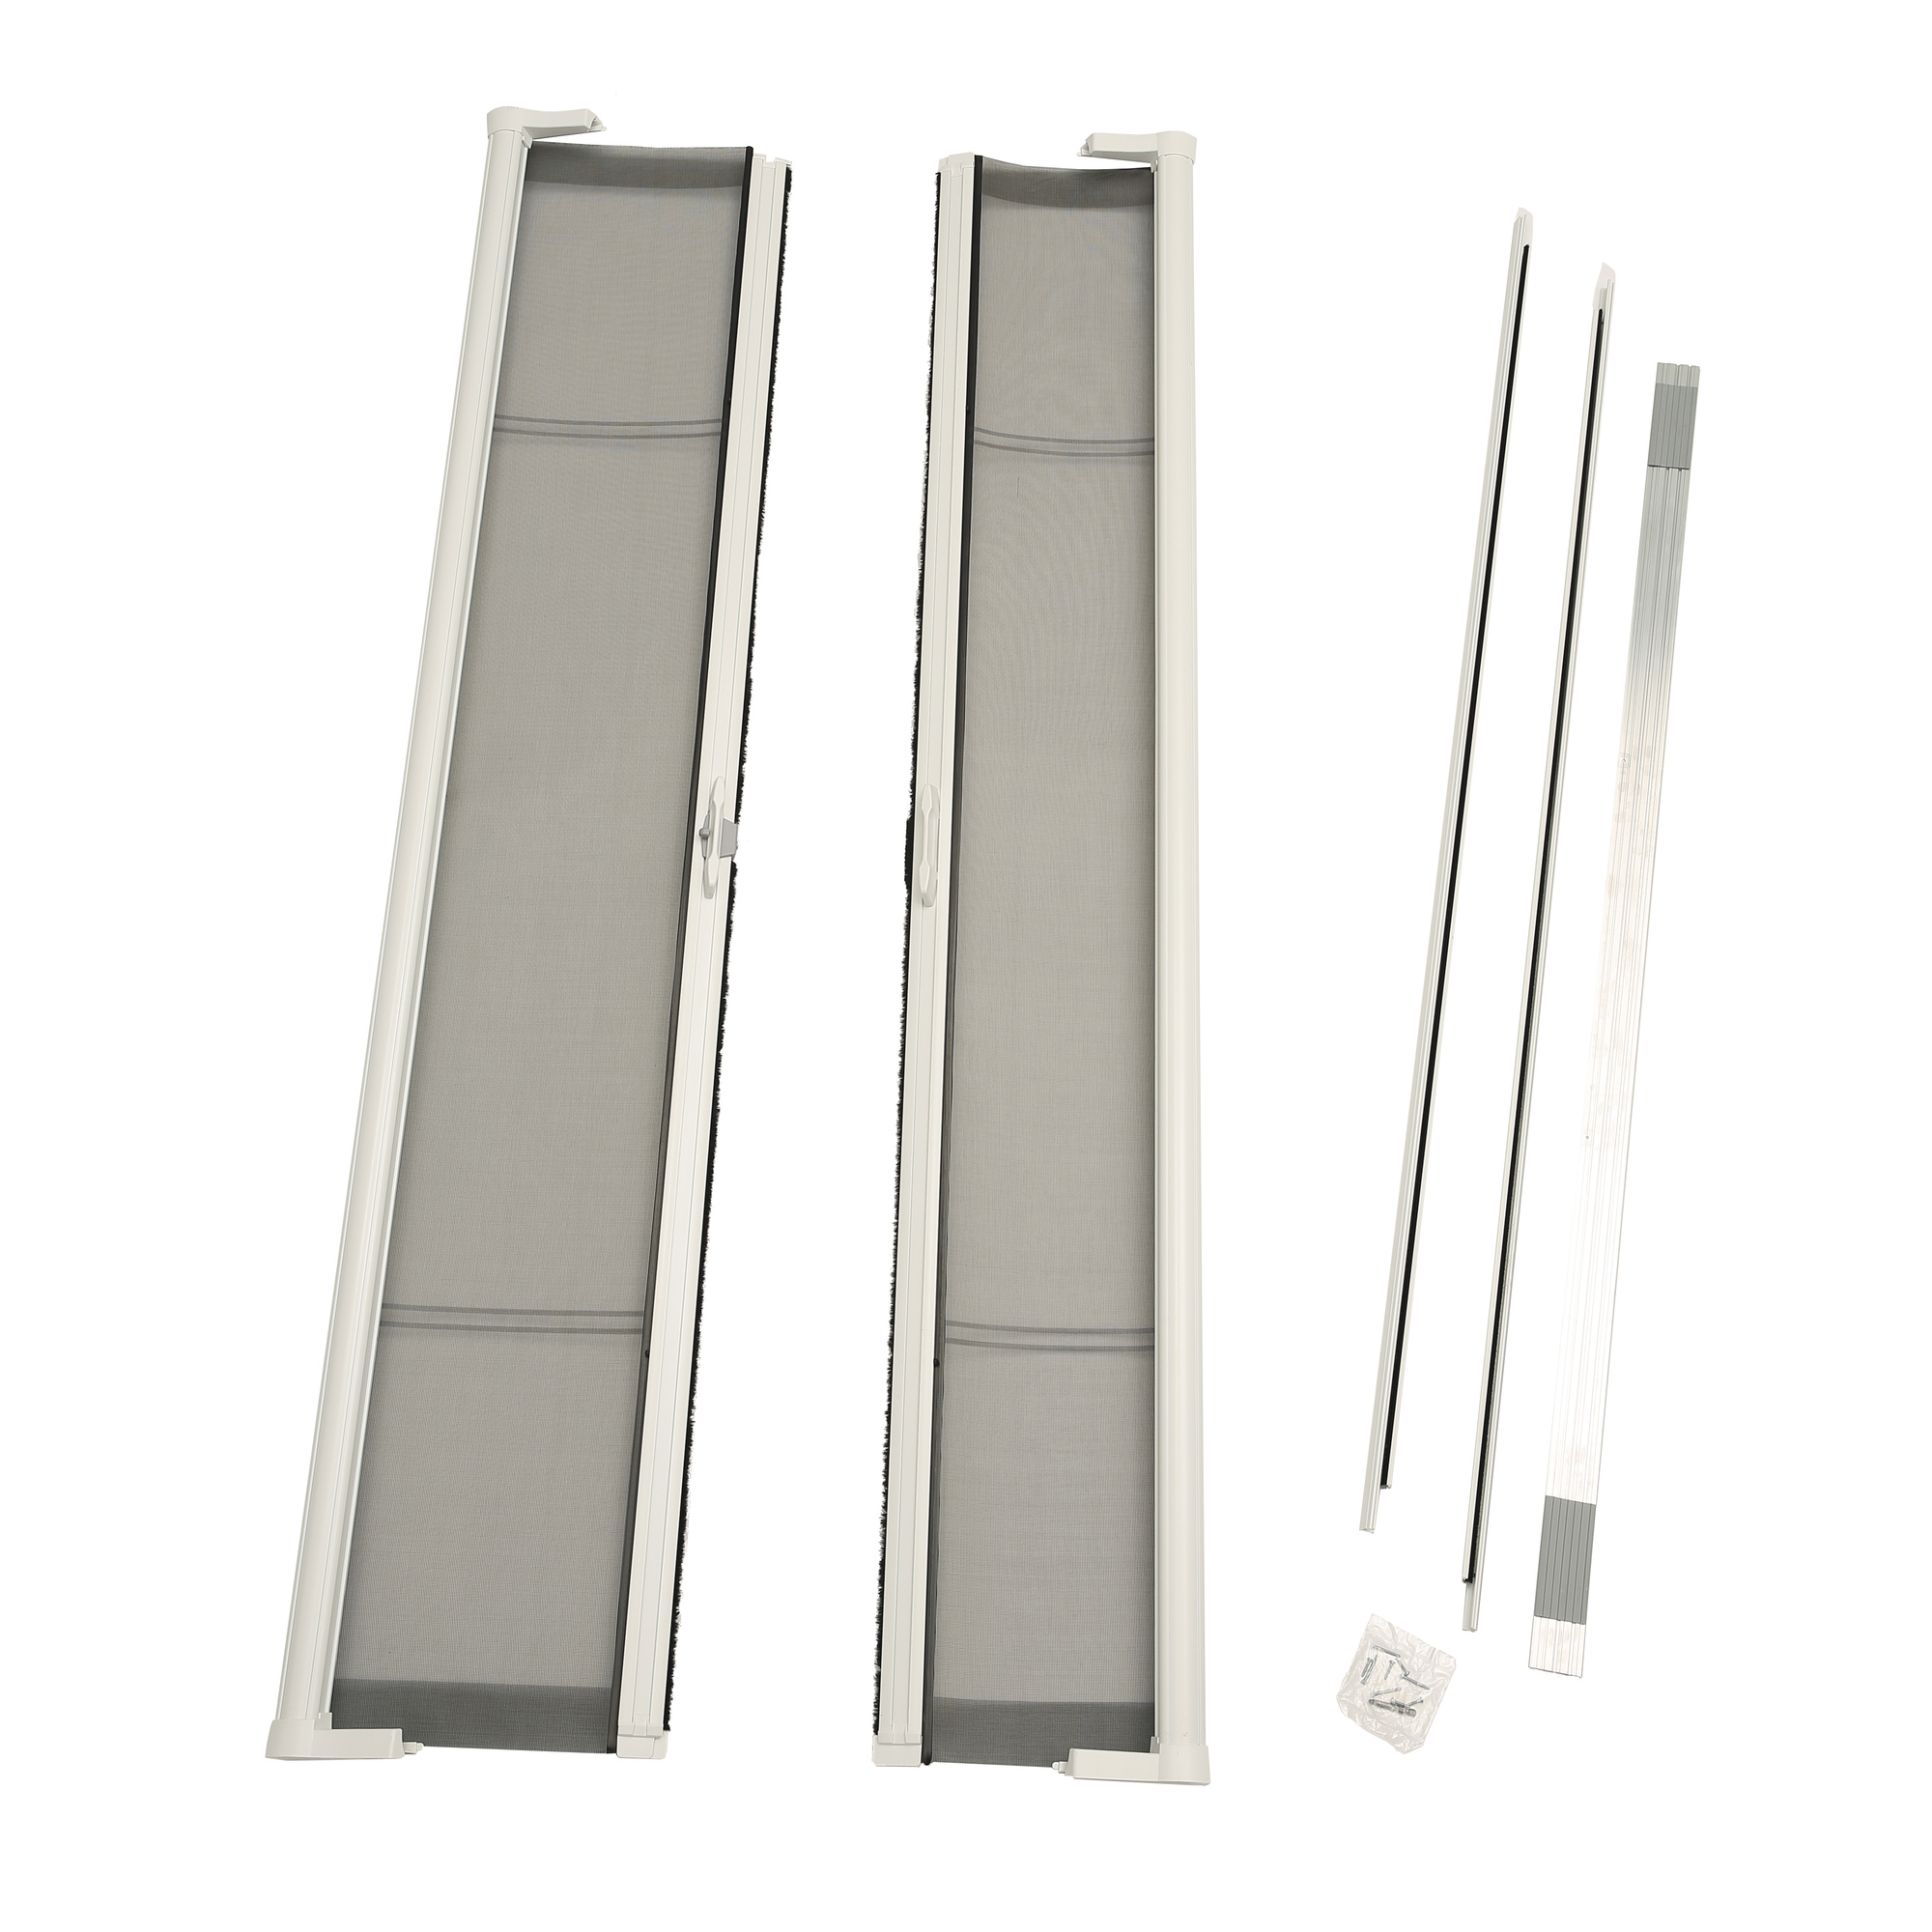 Retractable Screen Door Hardware